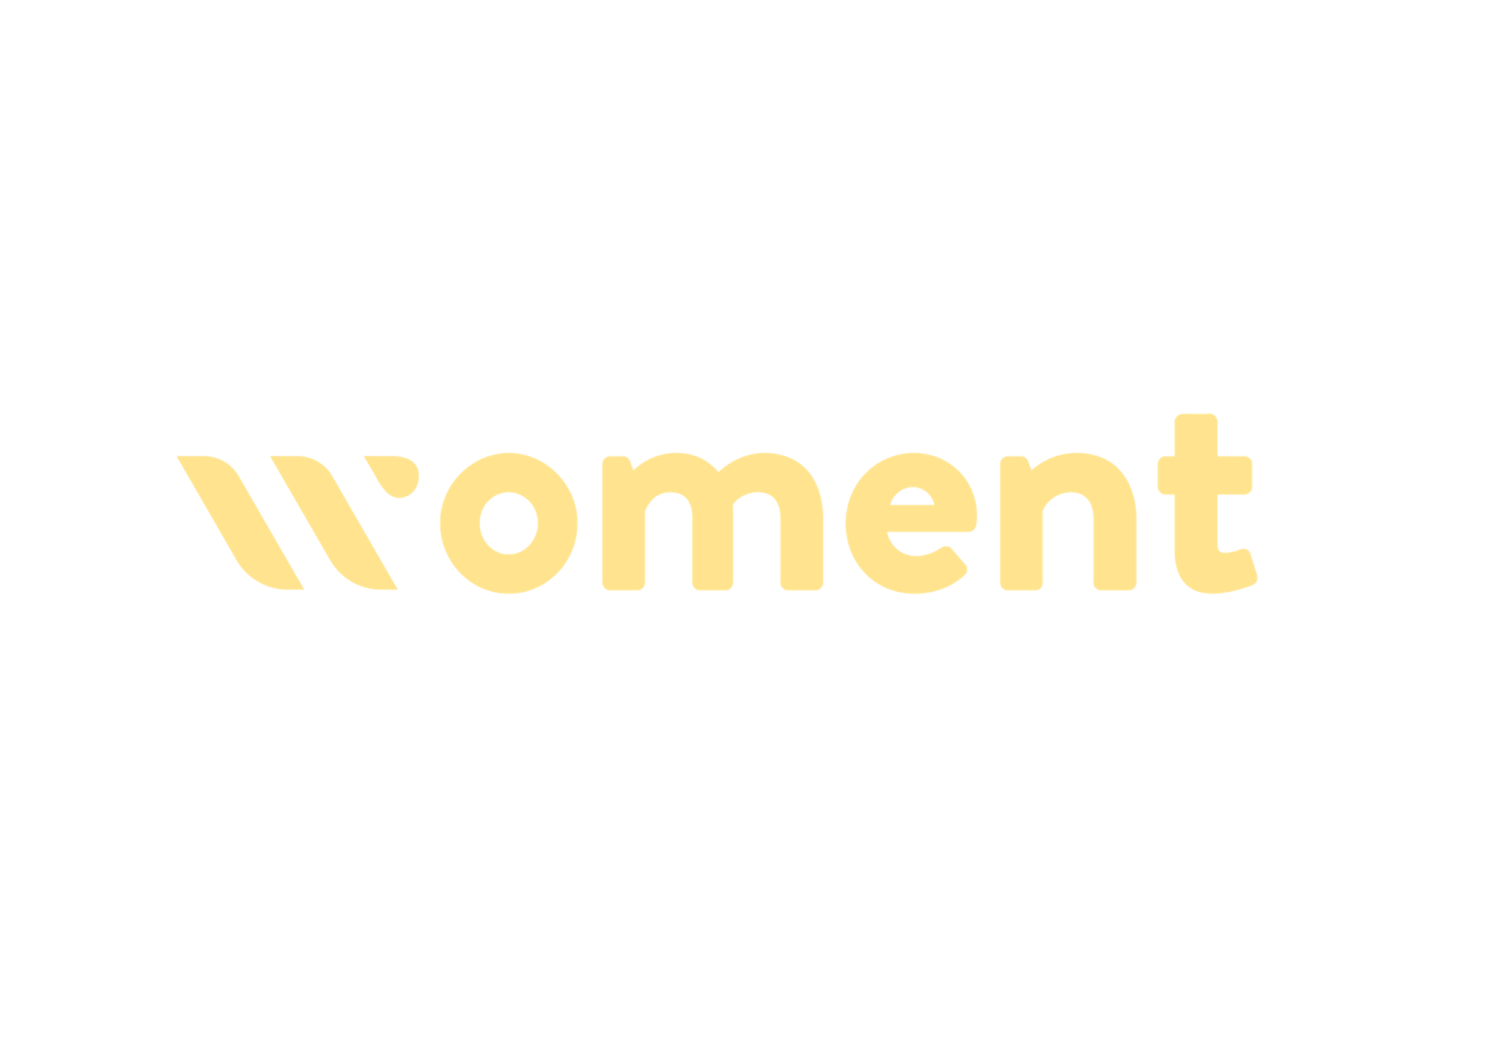 Woment